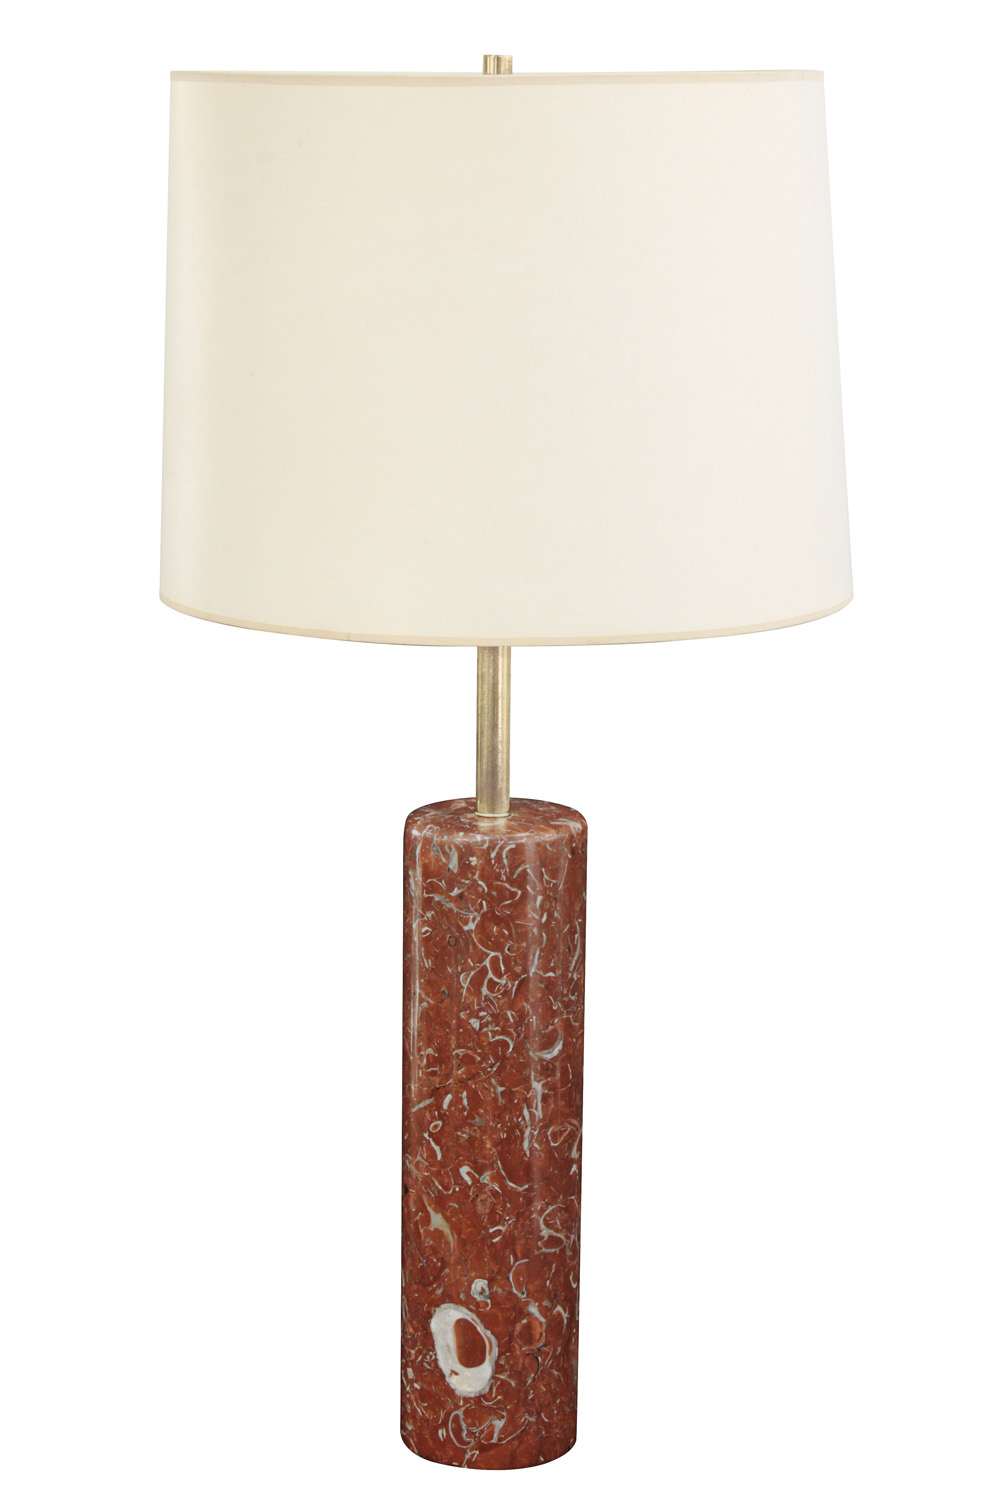 Nessen 18 red marble+brass tablelamp231 hires.jpg